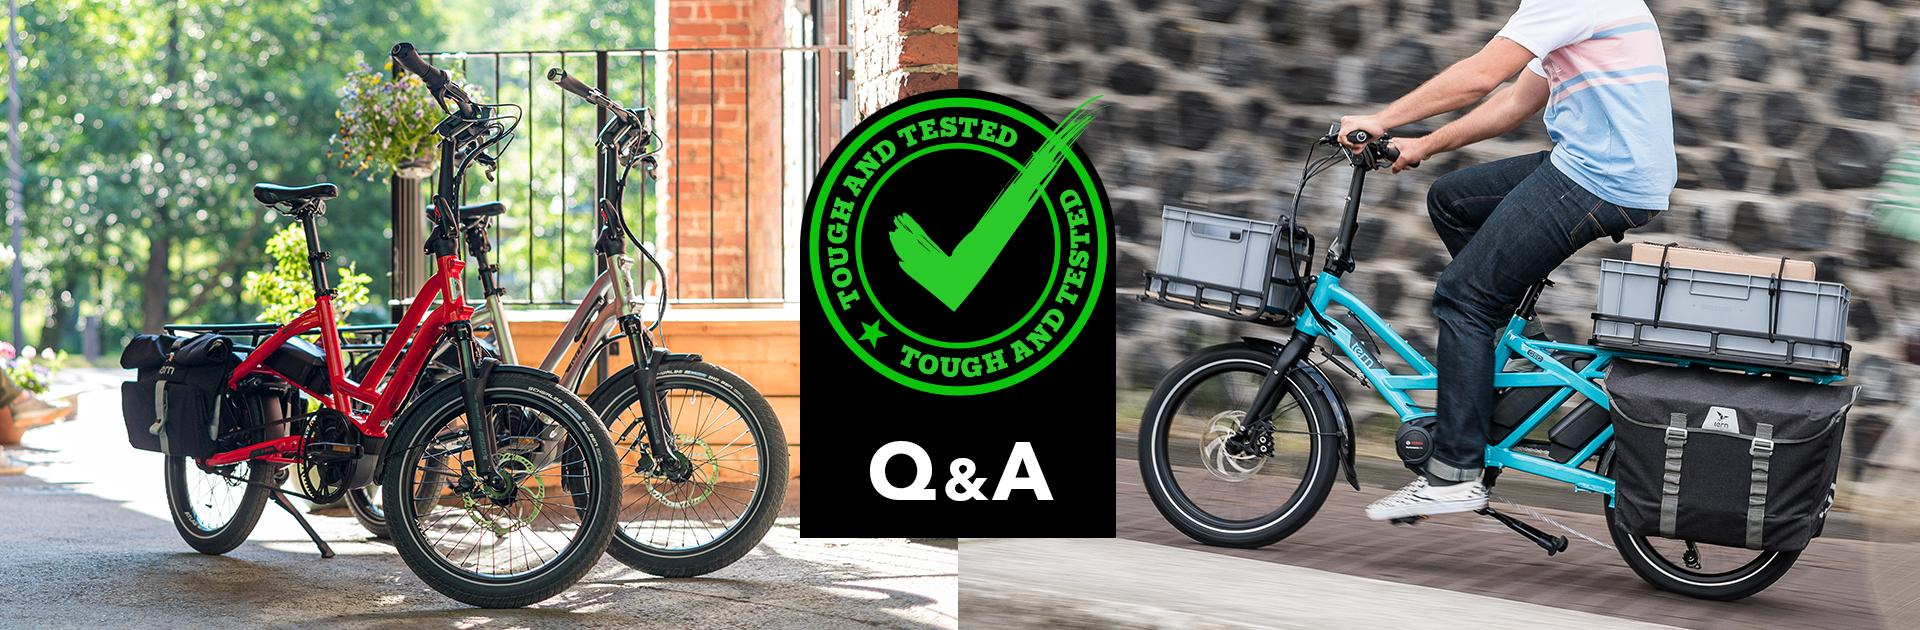 Q&A: How We Test Our Bikes